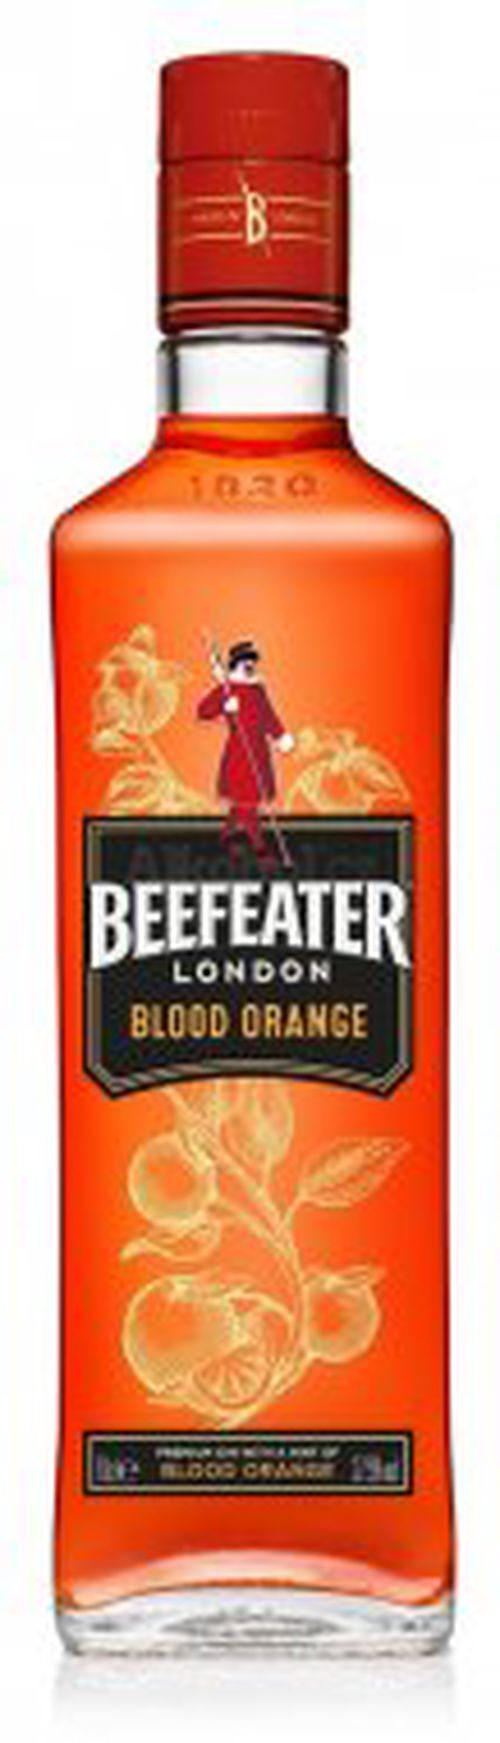 Beefeater Blood Orange 37,5 % 1 l